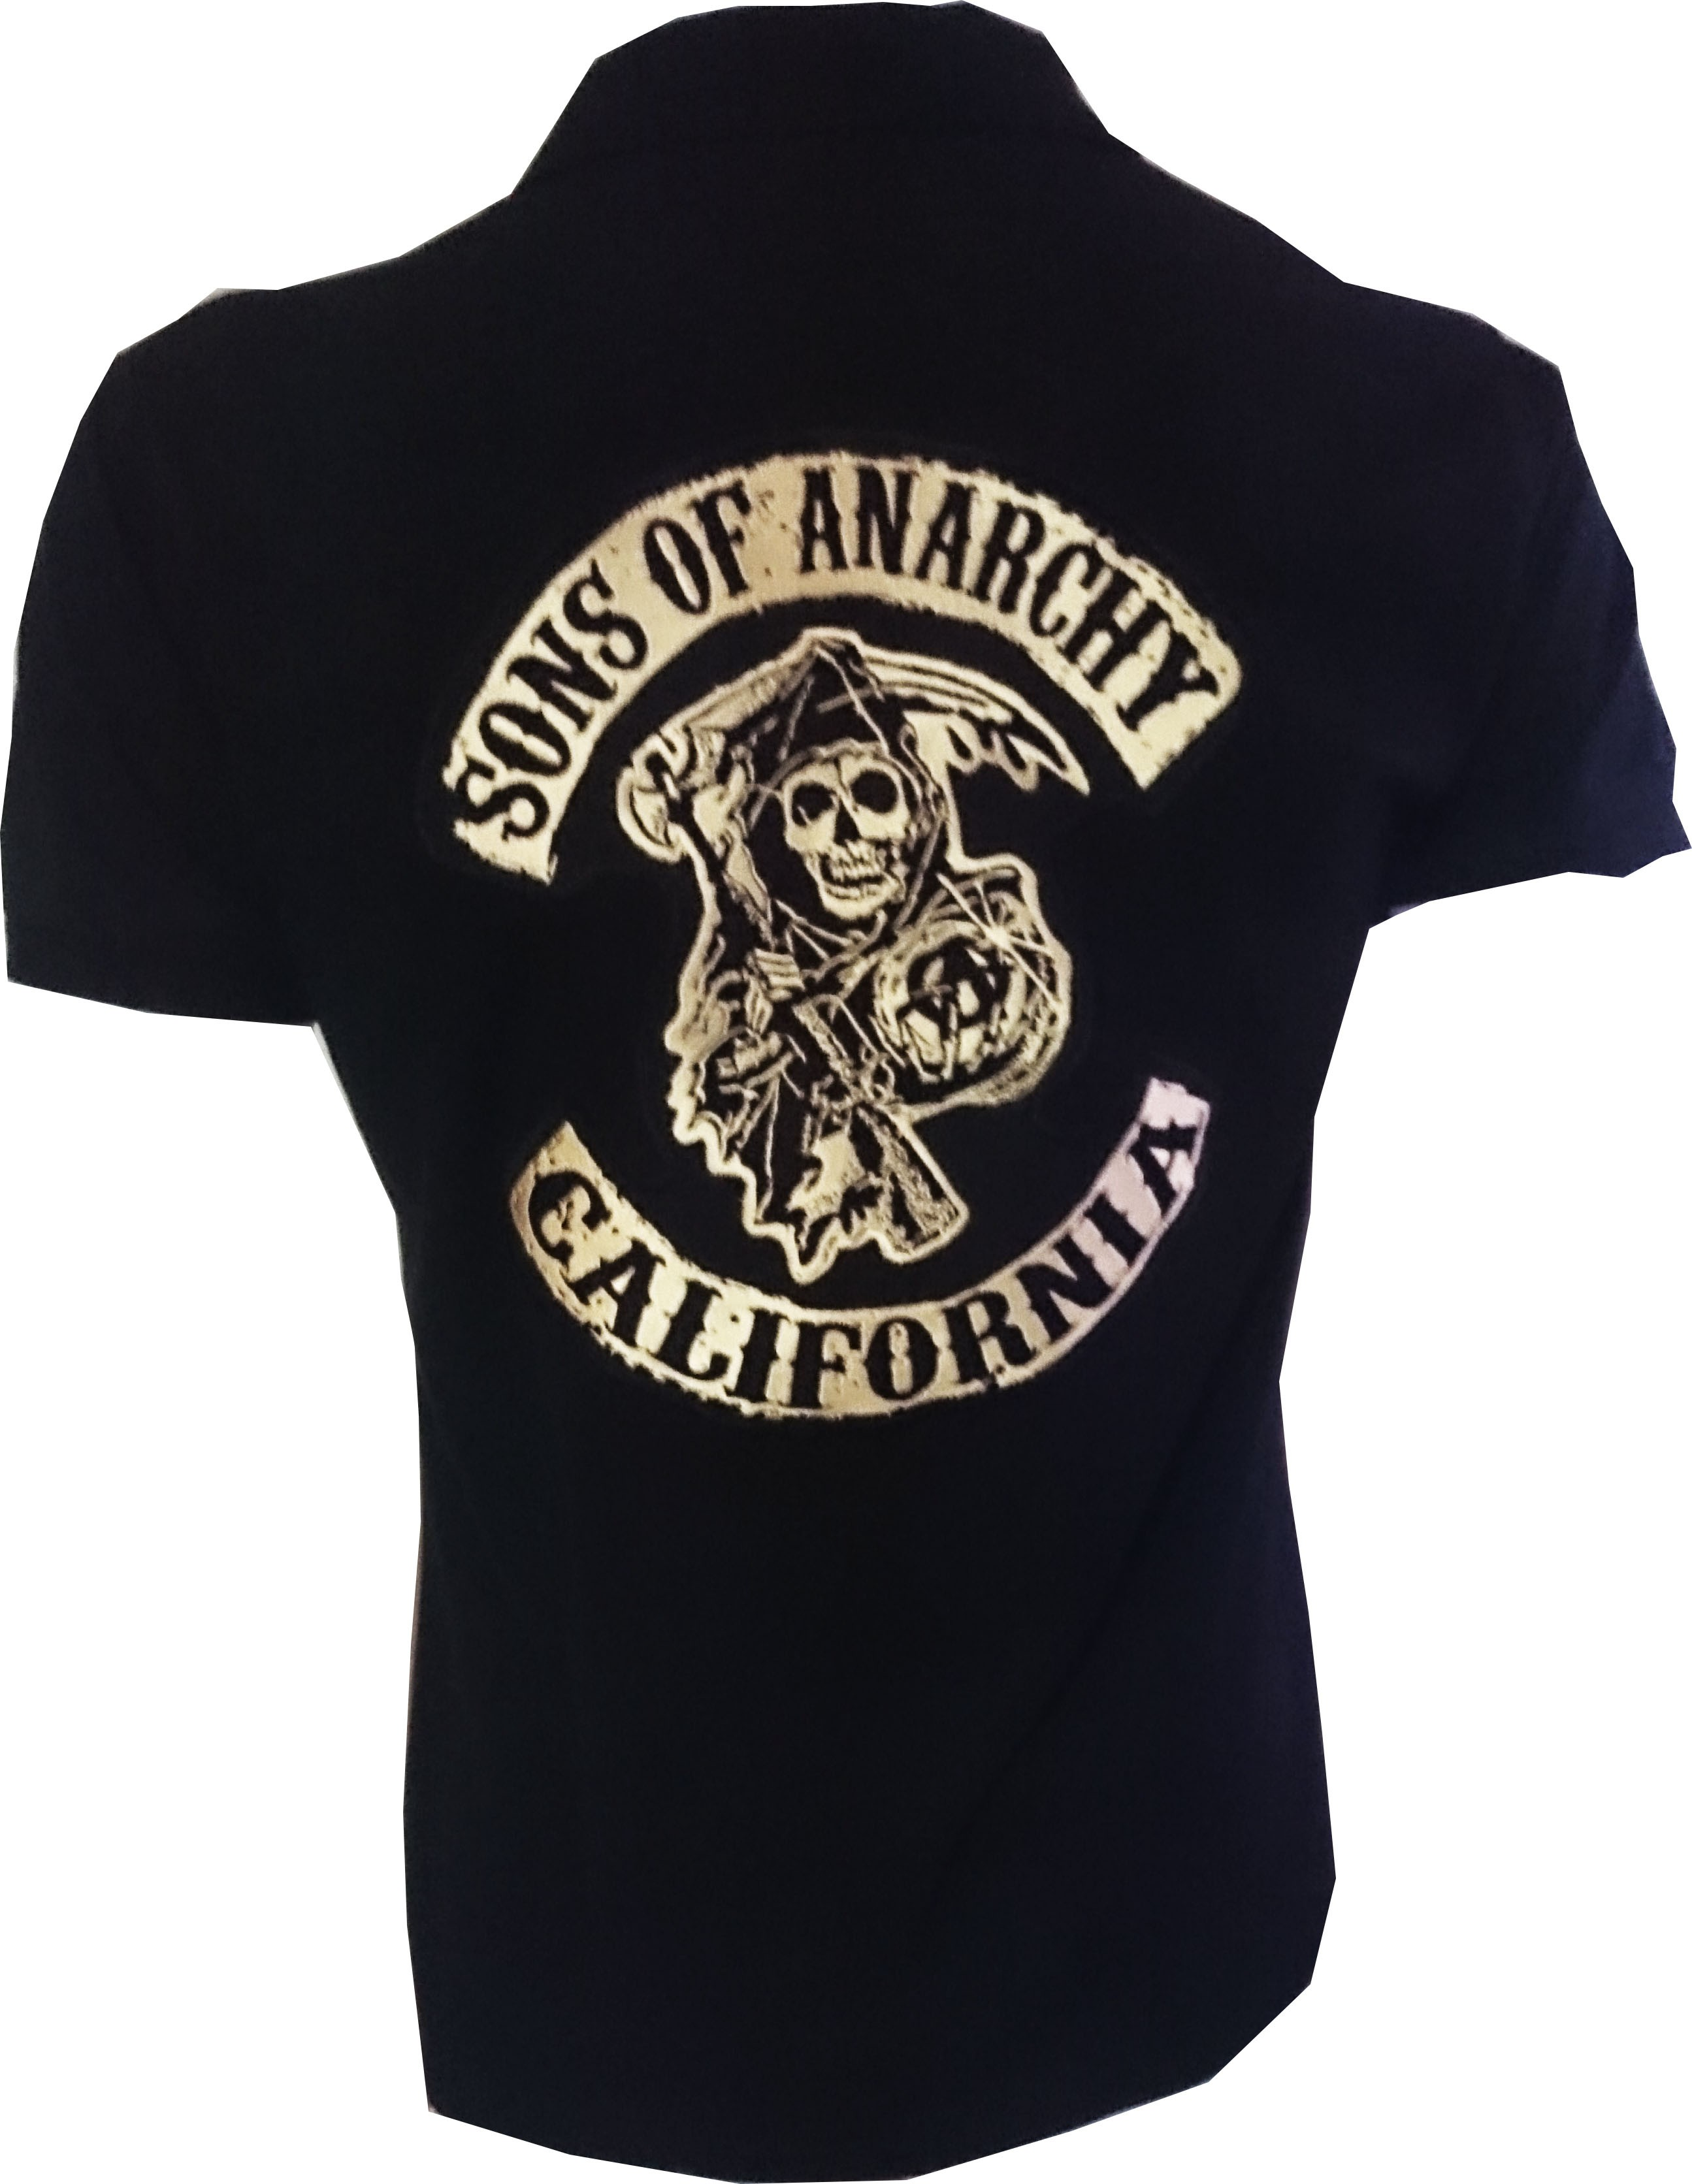 f535145bb8 sons-of-anarchy-polo-bordered-in-black-california.jpg